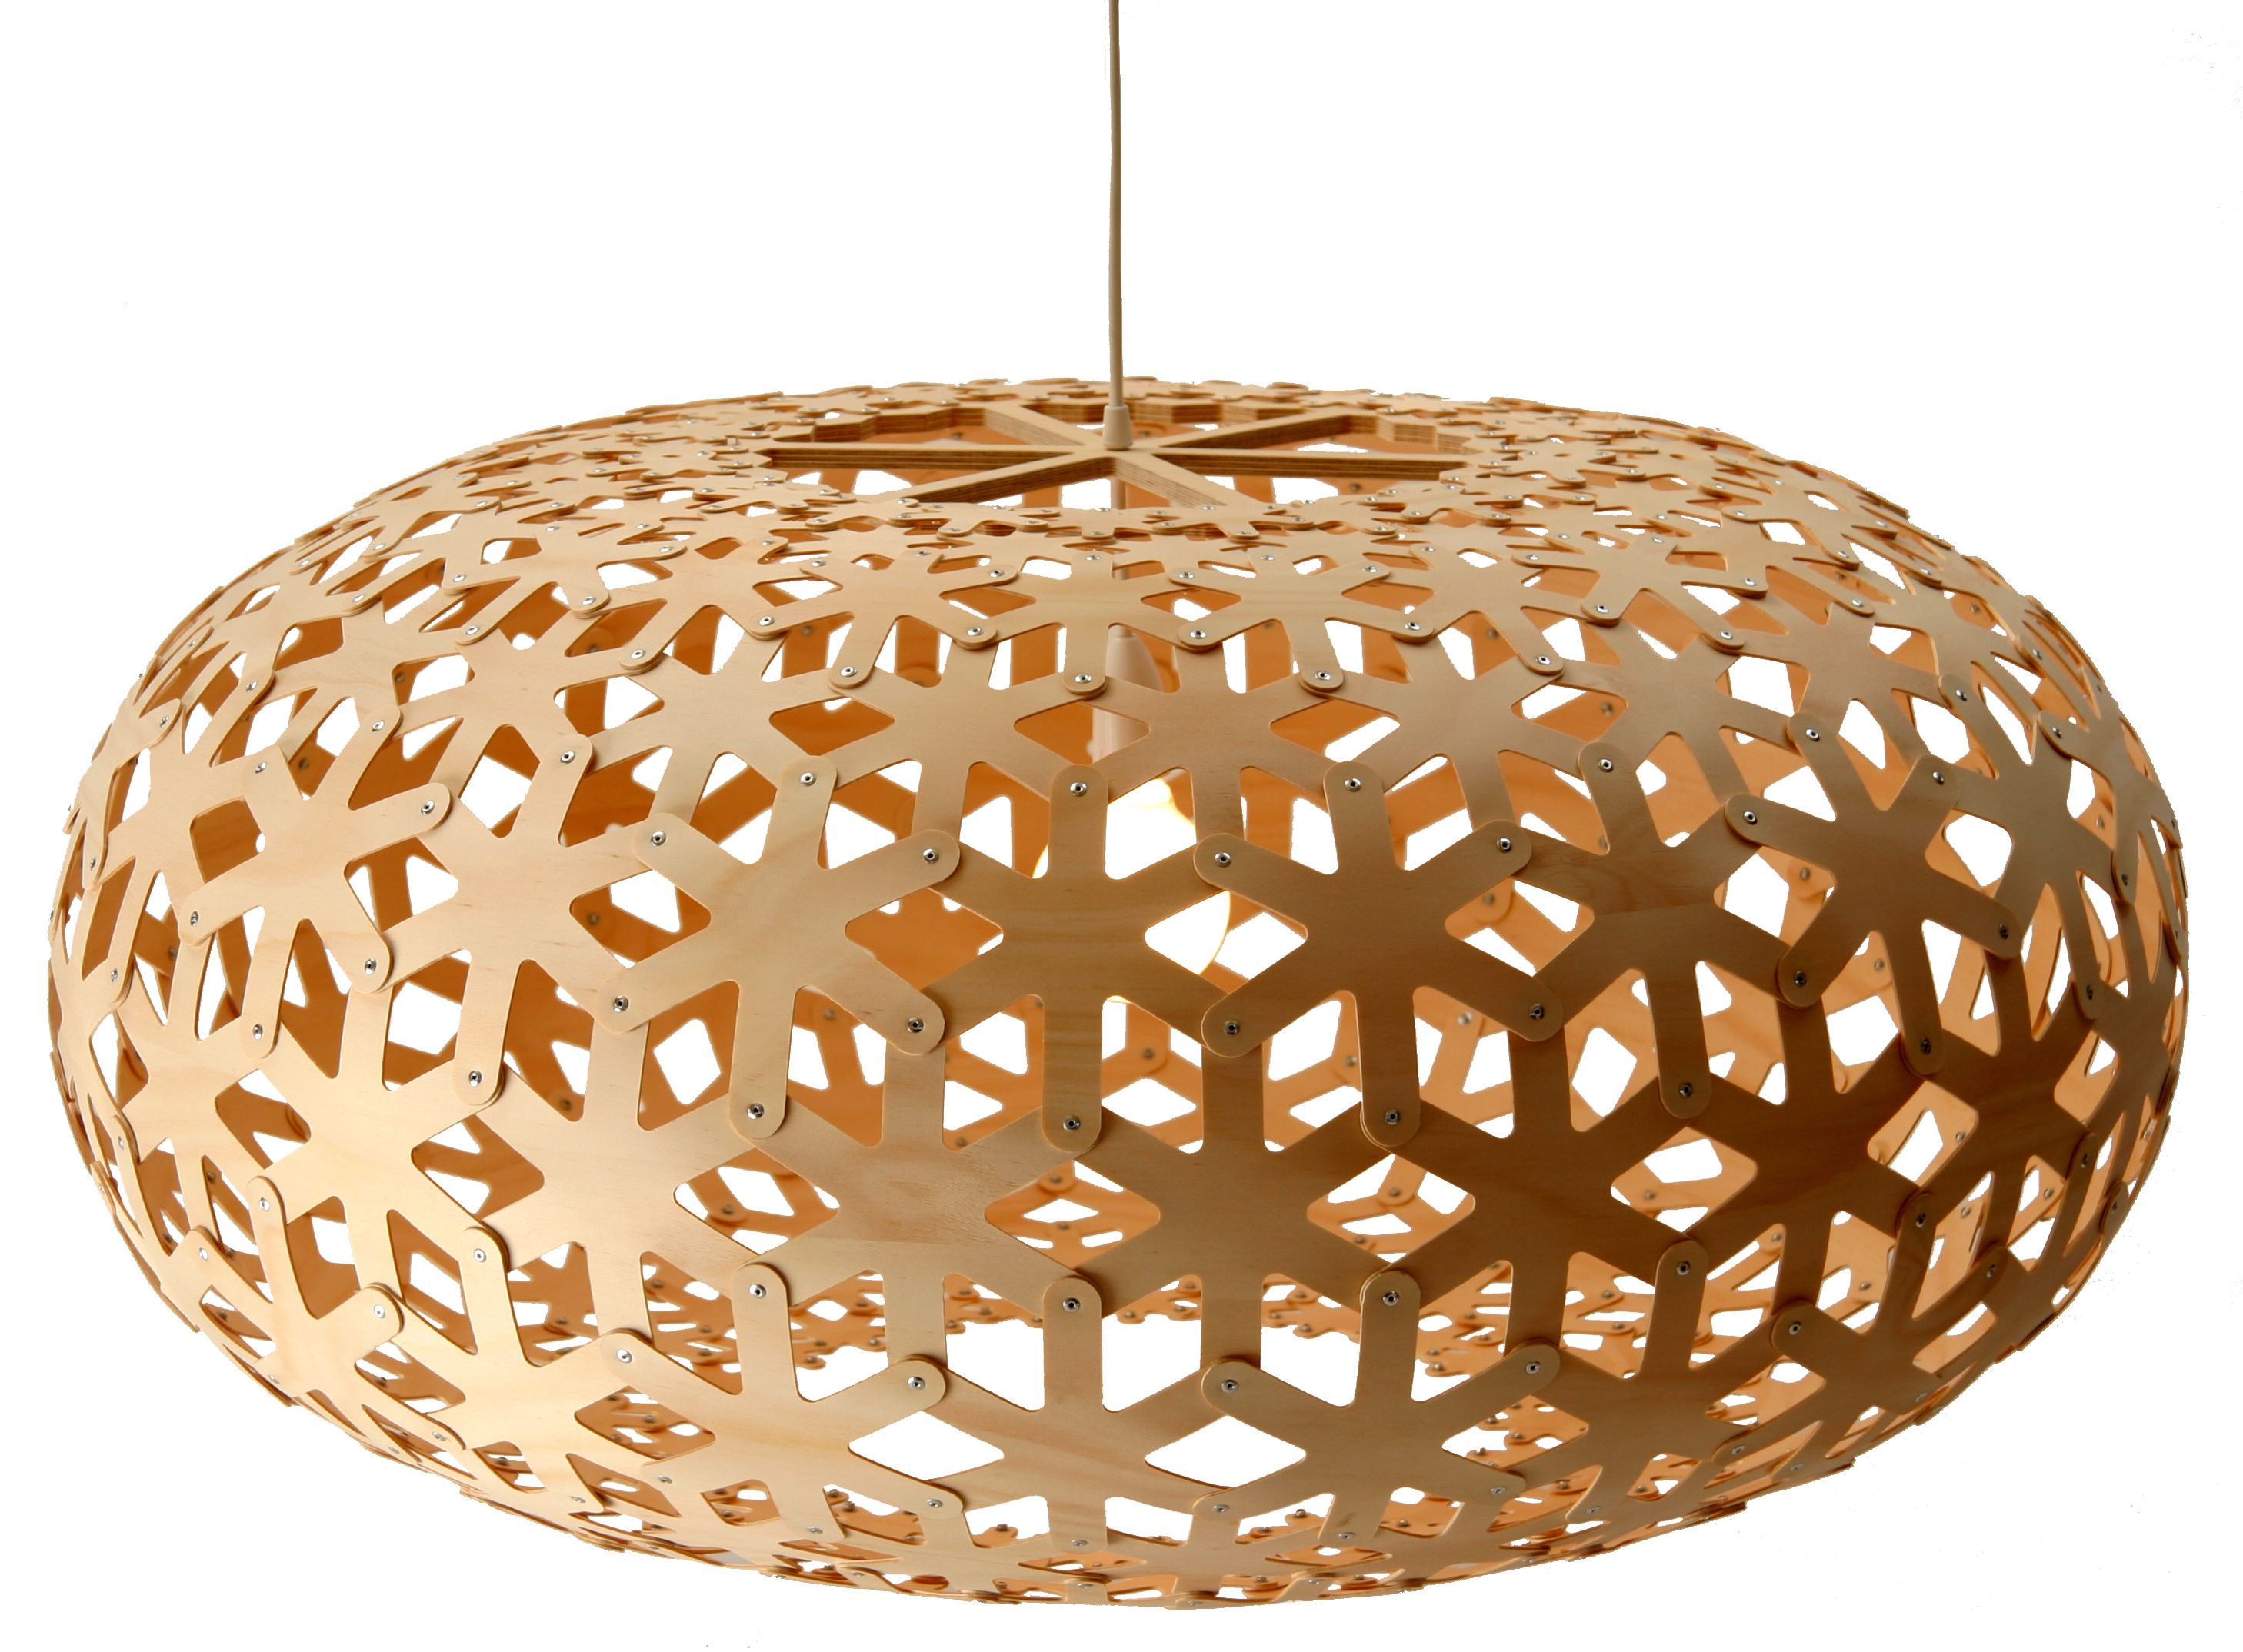 Luminaire - Suspensions - Suspension Snowflake Ø 100 cm - David Trubridge - Bois naturel - Contreplaqué de pin